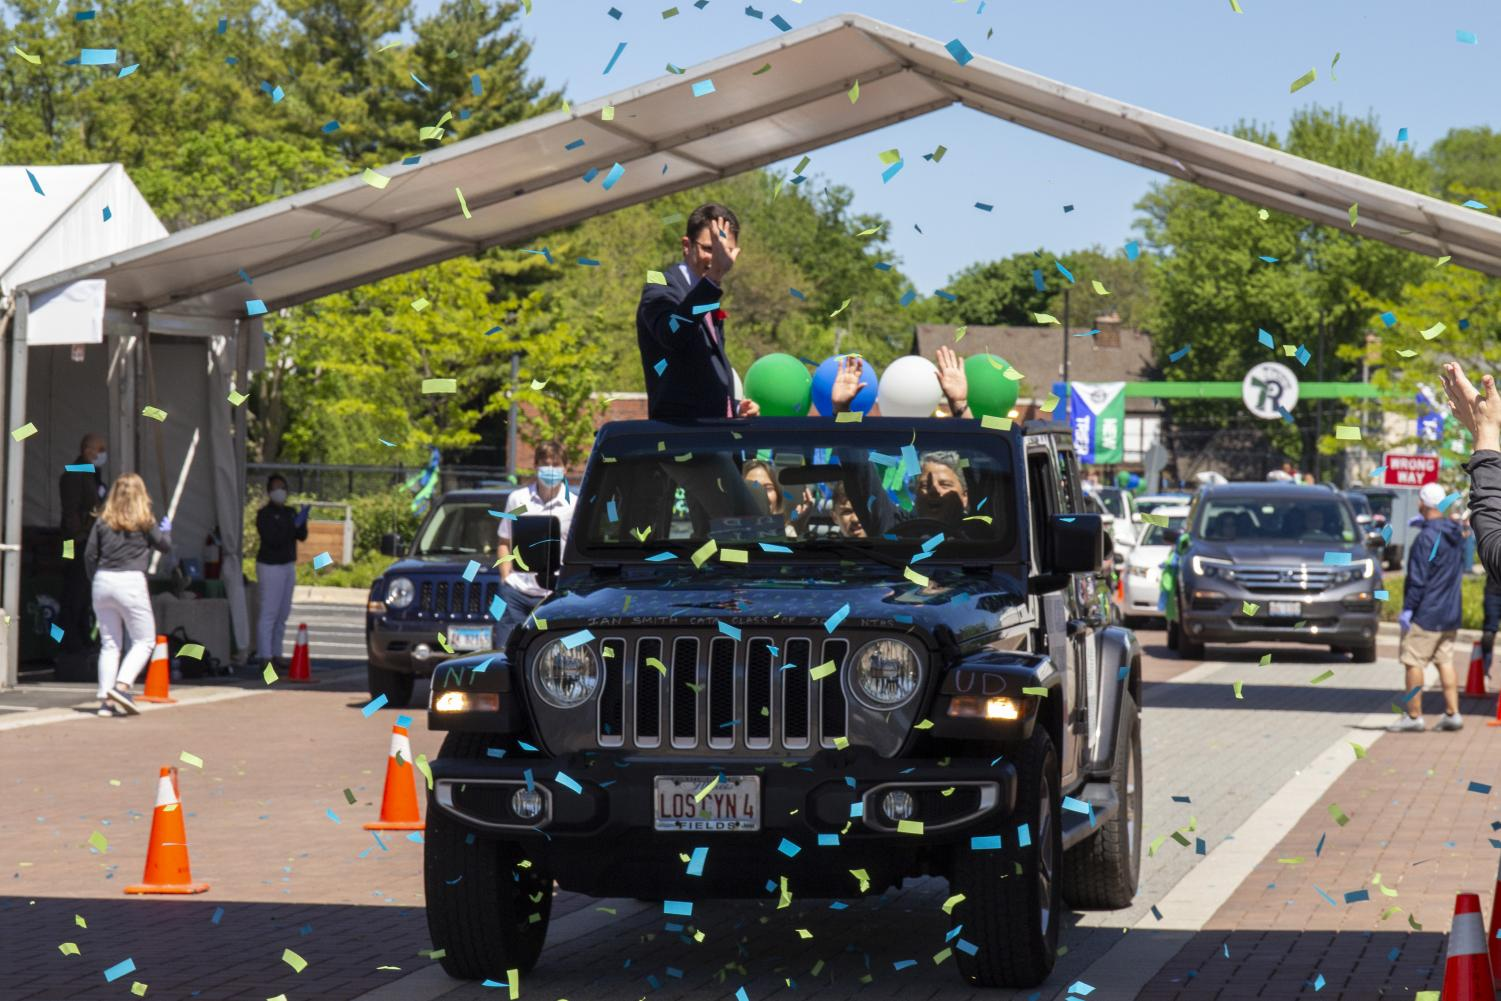 On May 31, seniors rolled through a graduation ceremony that was more party than pomp